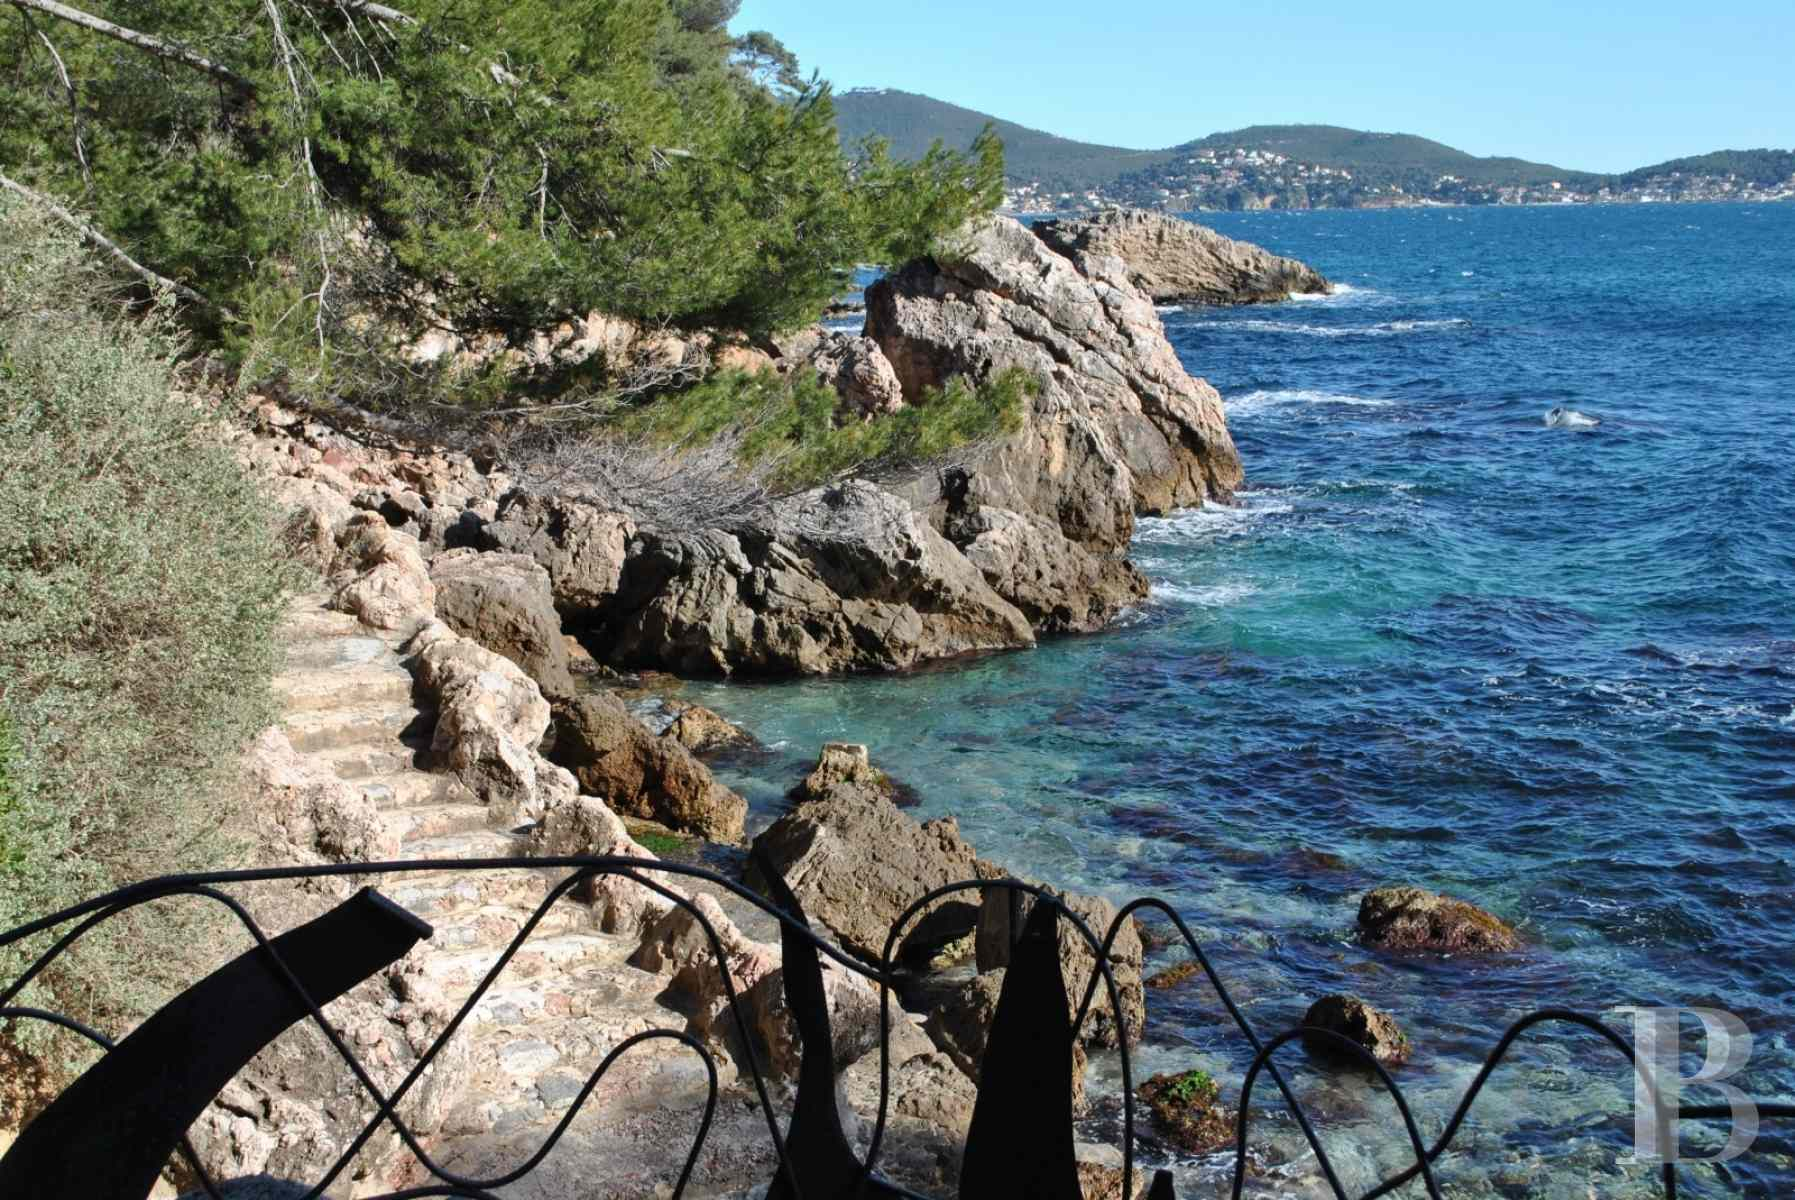 property for sale France provence cote dazur villa toulon - 12 zoom